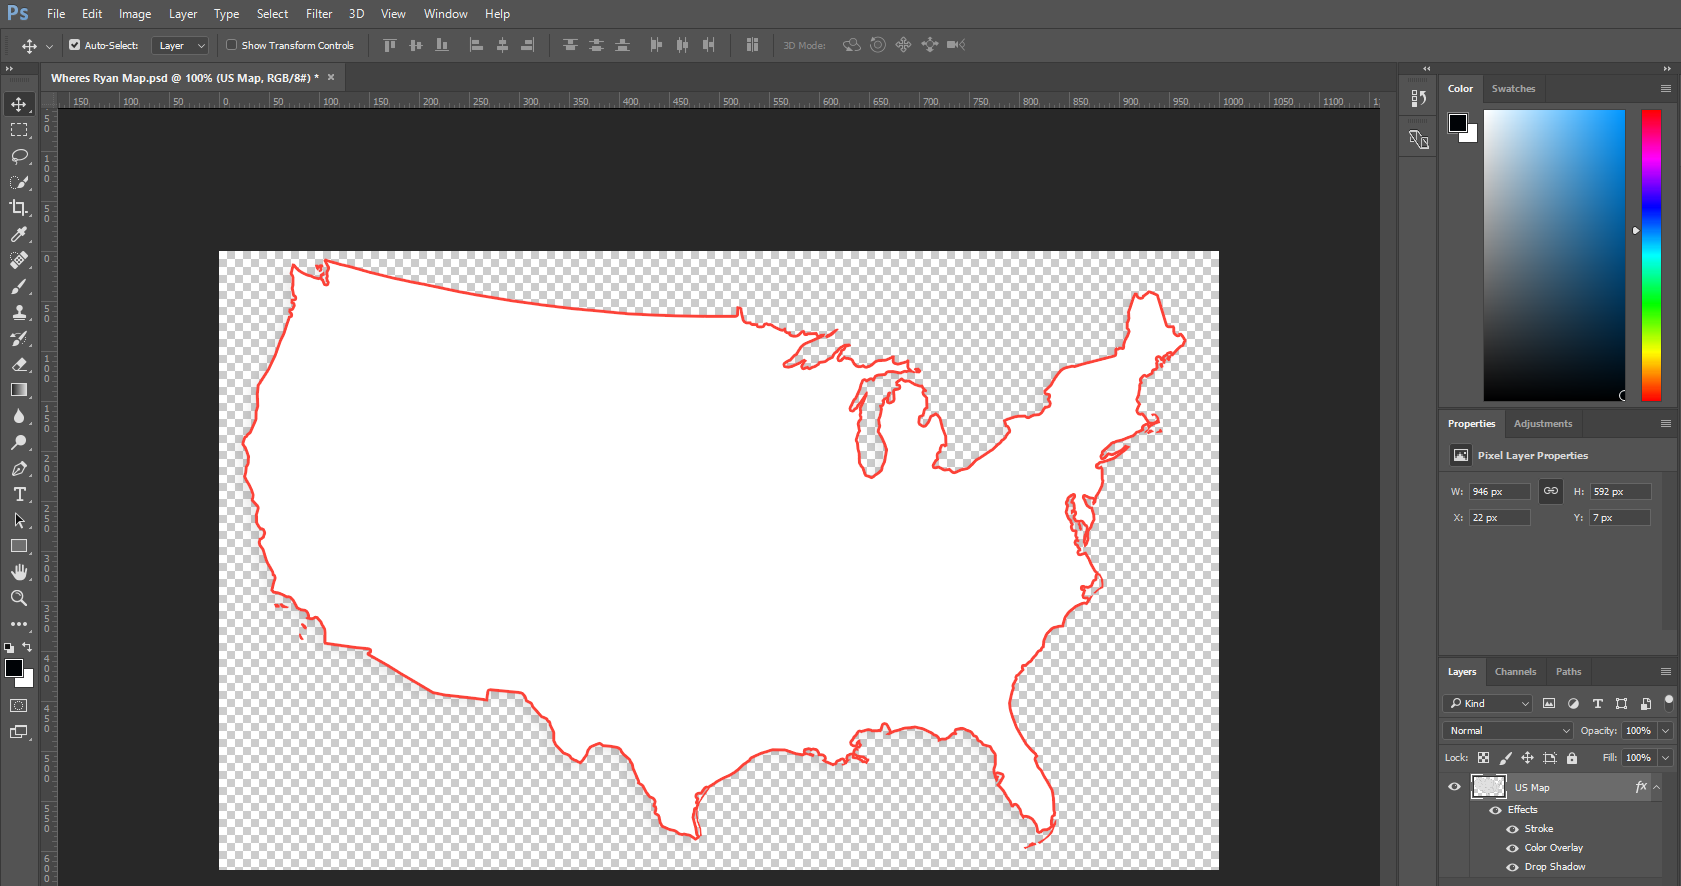 How to Make a Custom Map in Tableau Ryan Sleeper